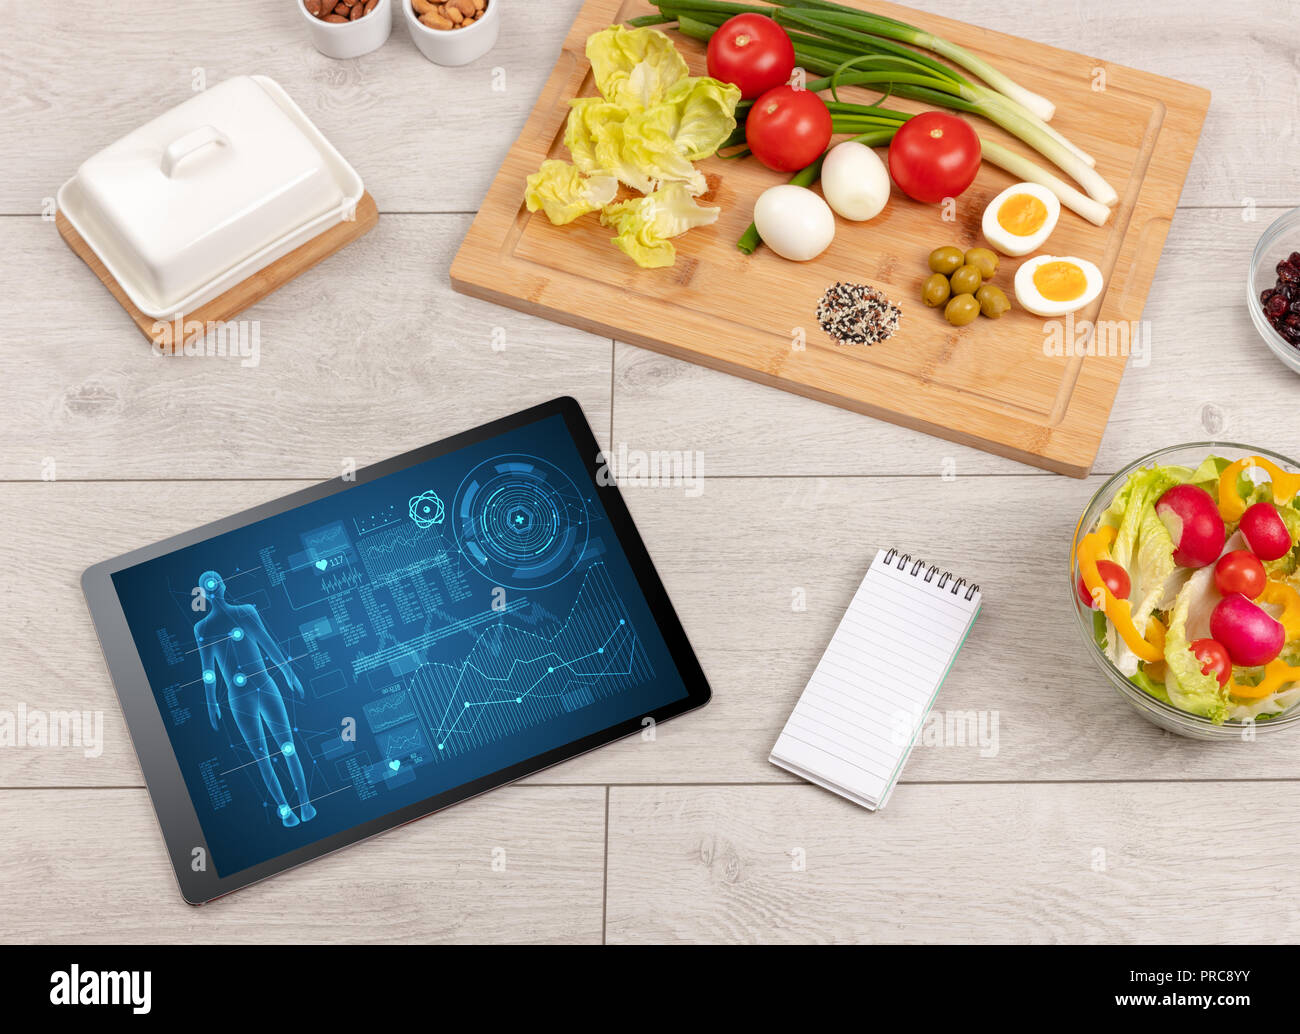 Healthy food composition with tablet. Body diagnosis on the screen - Stock Image